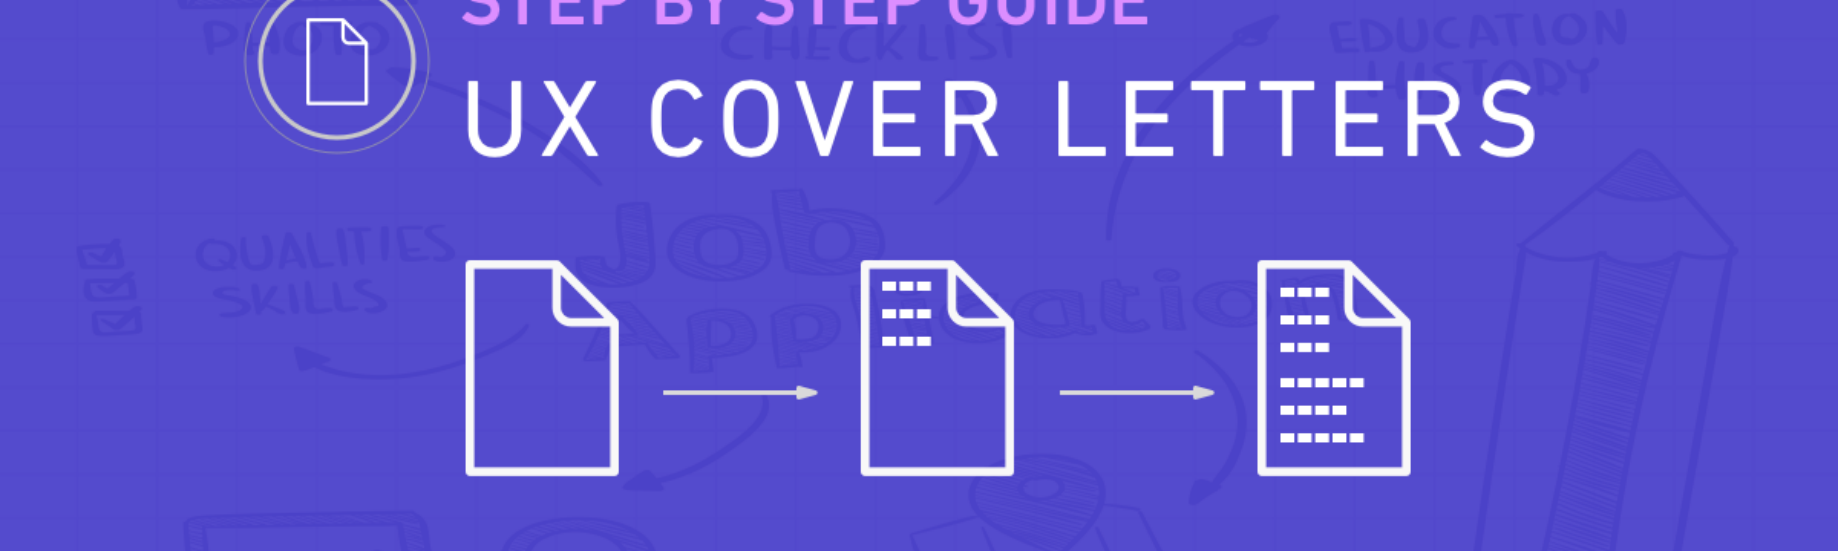 Ux Cover Letters A Step By Step Guide